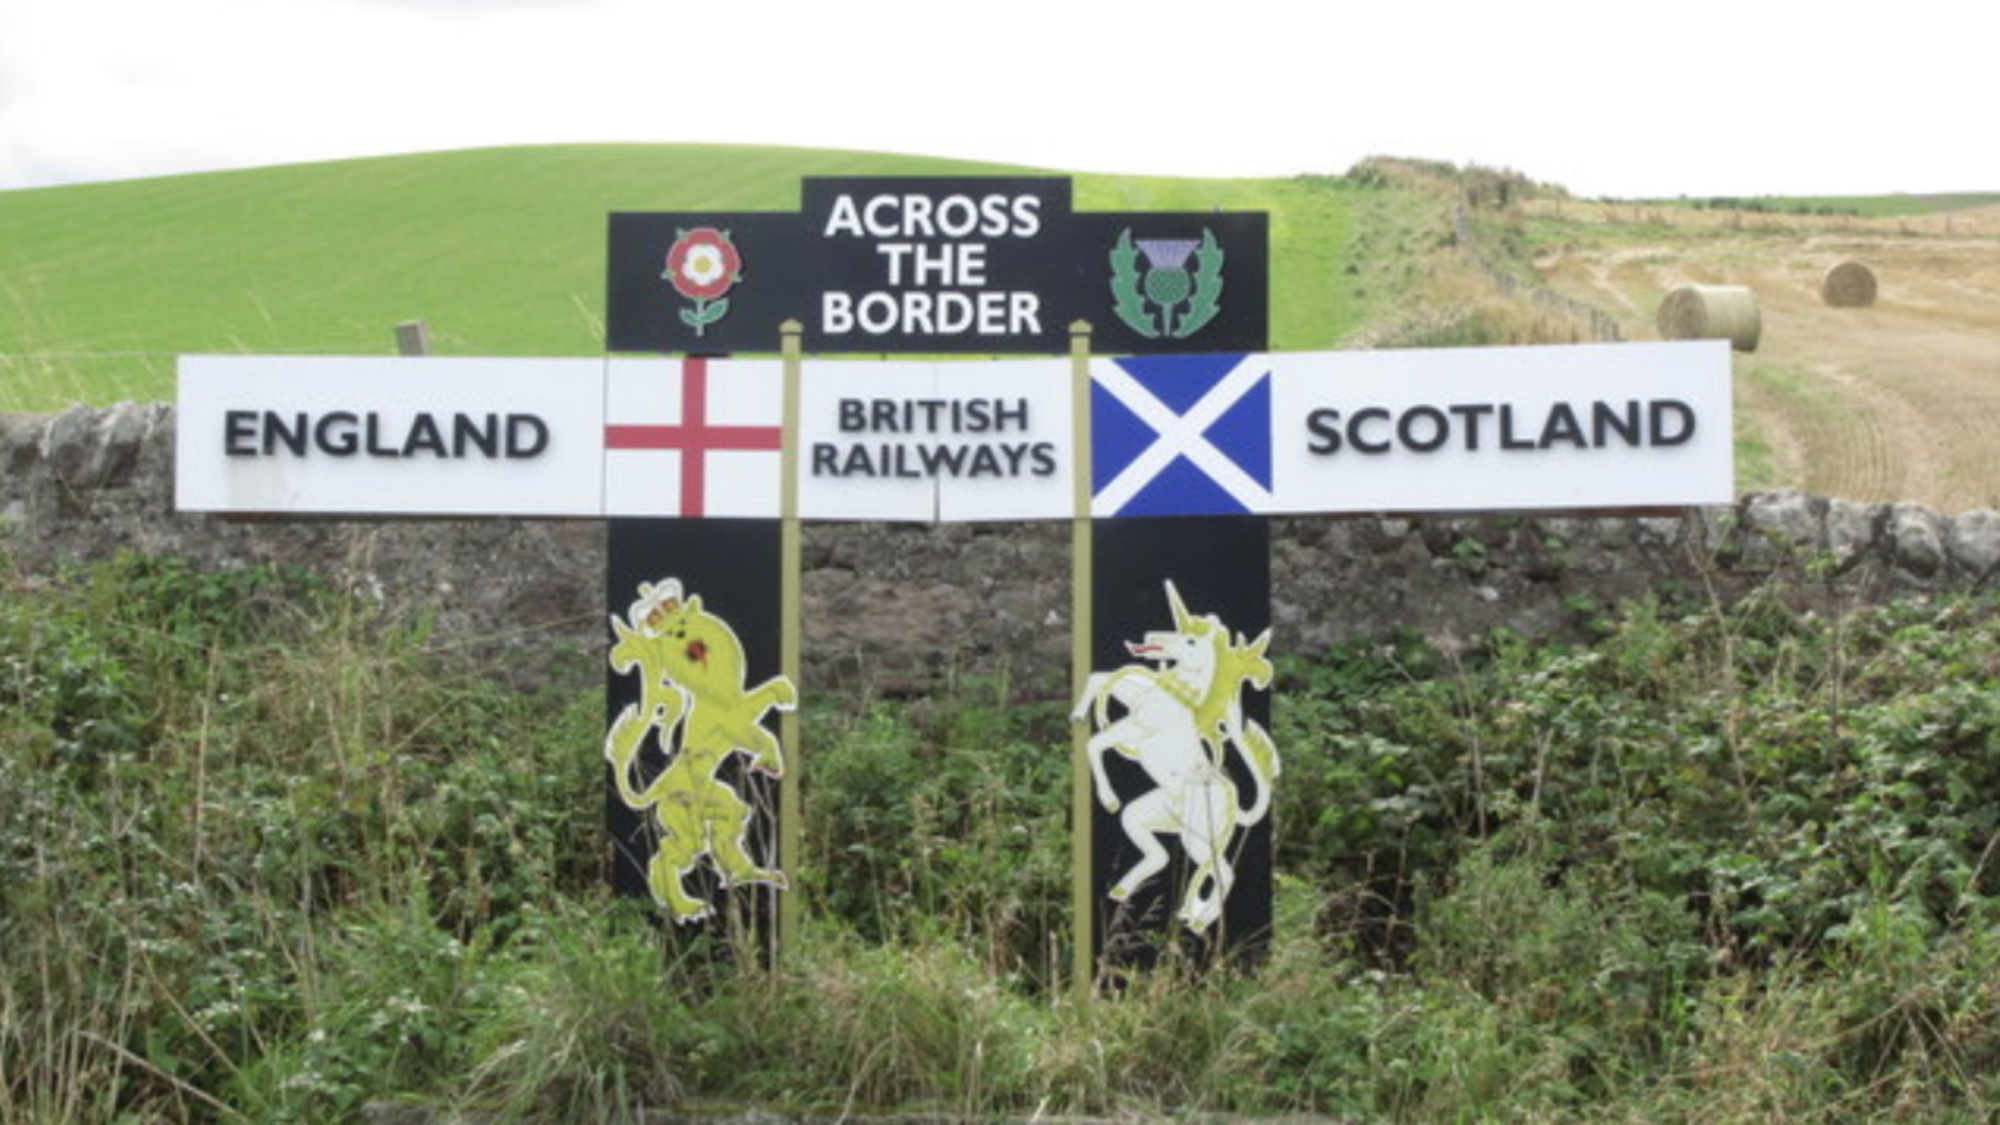 Signpost at the border of England and Scotland.